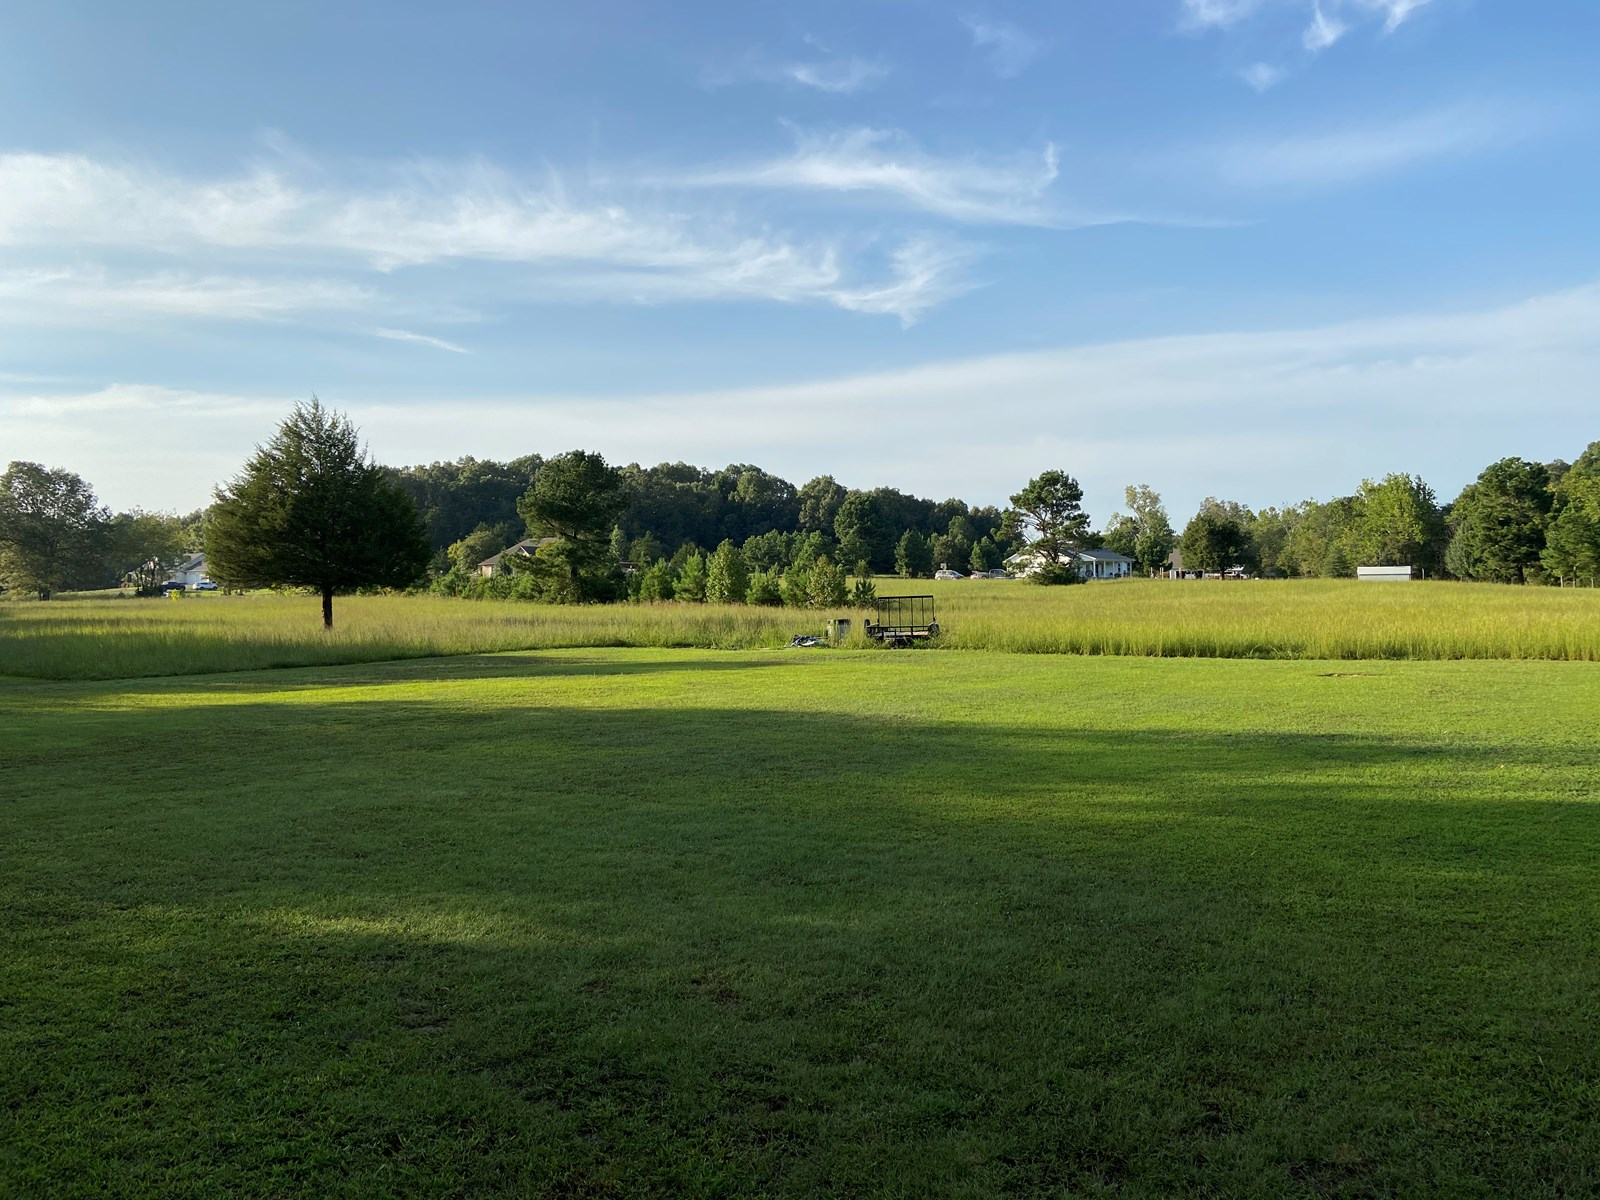 Land for sale 5.8 acres (7 lots) 3 minutes from Golf Course